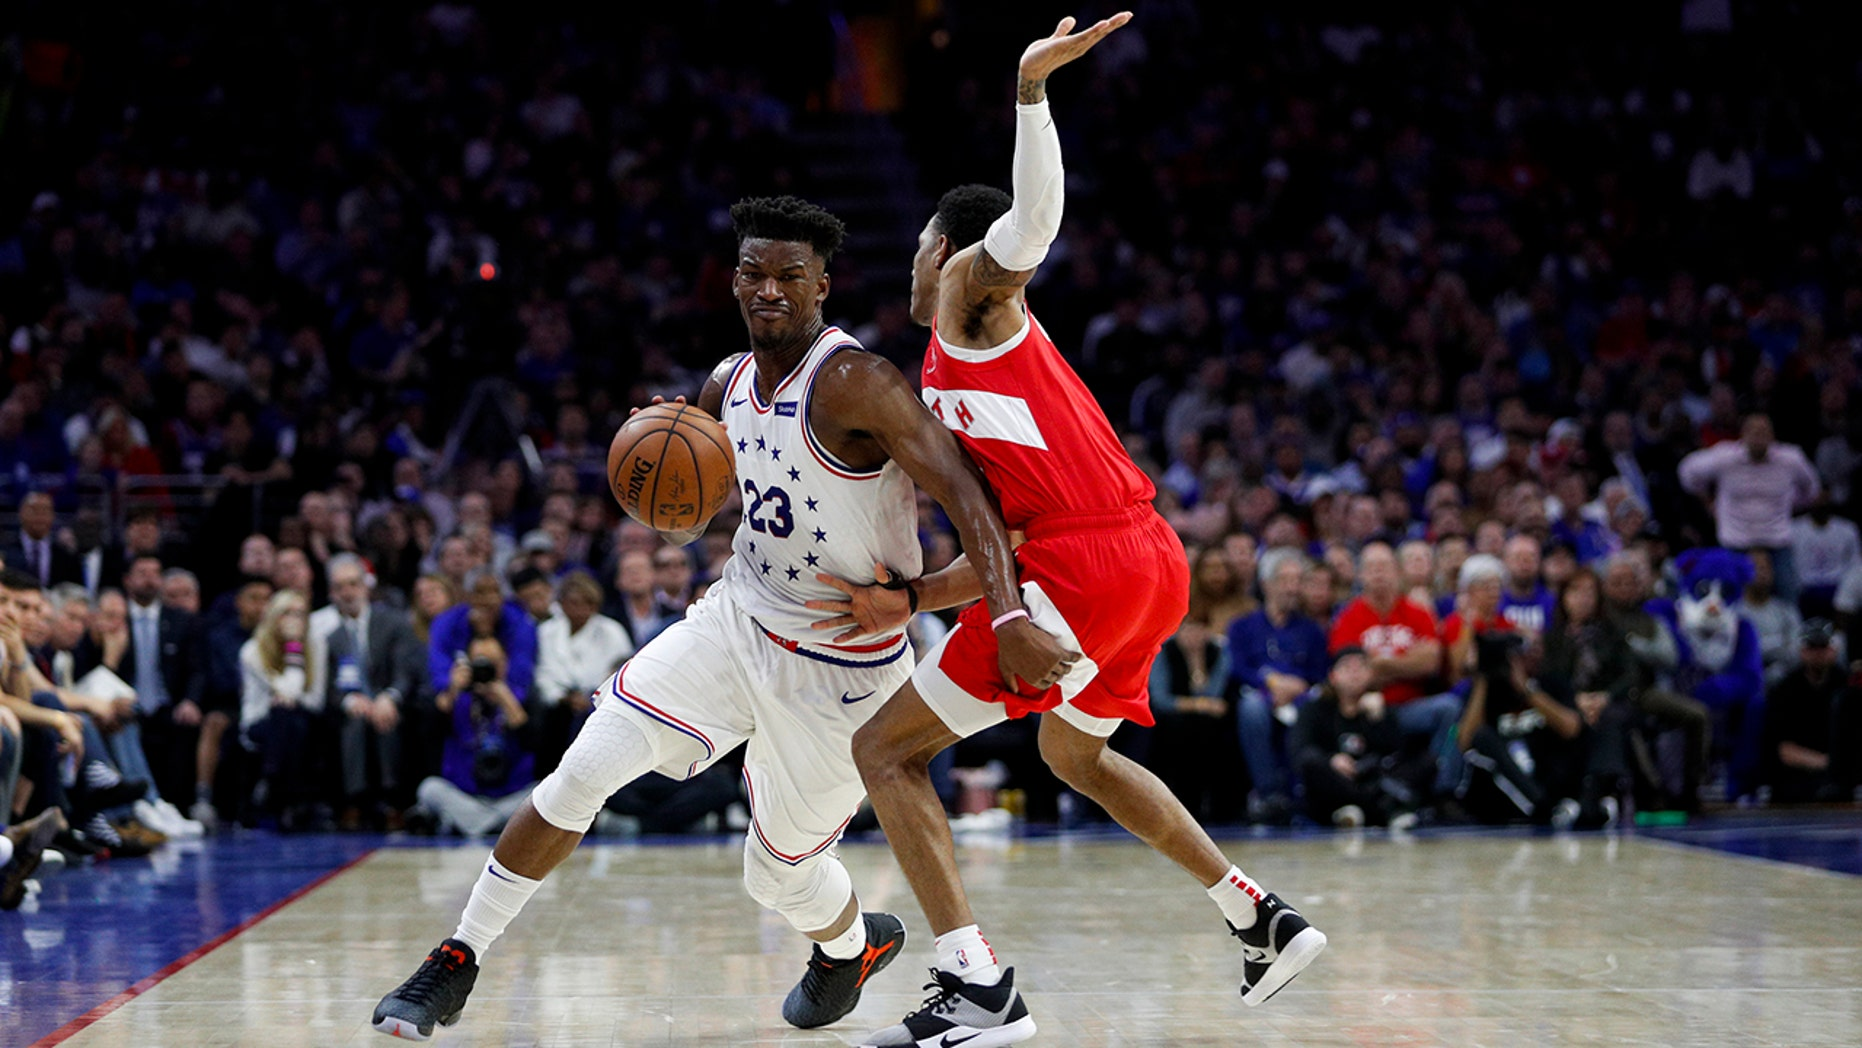 Philadelphia 76ers' Jimmy Butler, left, tries to get past Toronto Raptors' Patrick McCaw during the first half of Game 6 of a second-round NBA basketball playoff series Thursday, May 9, 2019, in Philadelphia. (AP Photo/Chris Szagola)